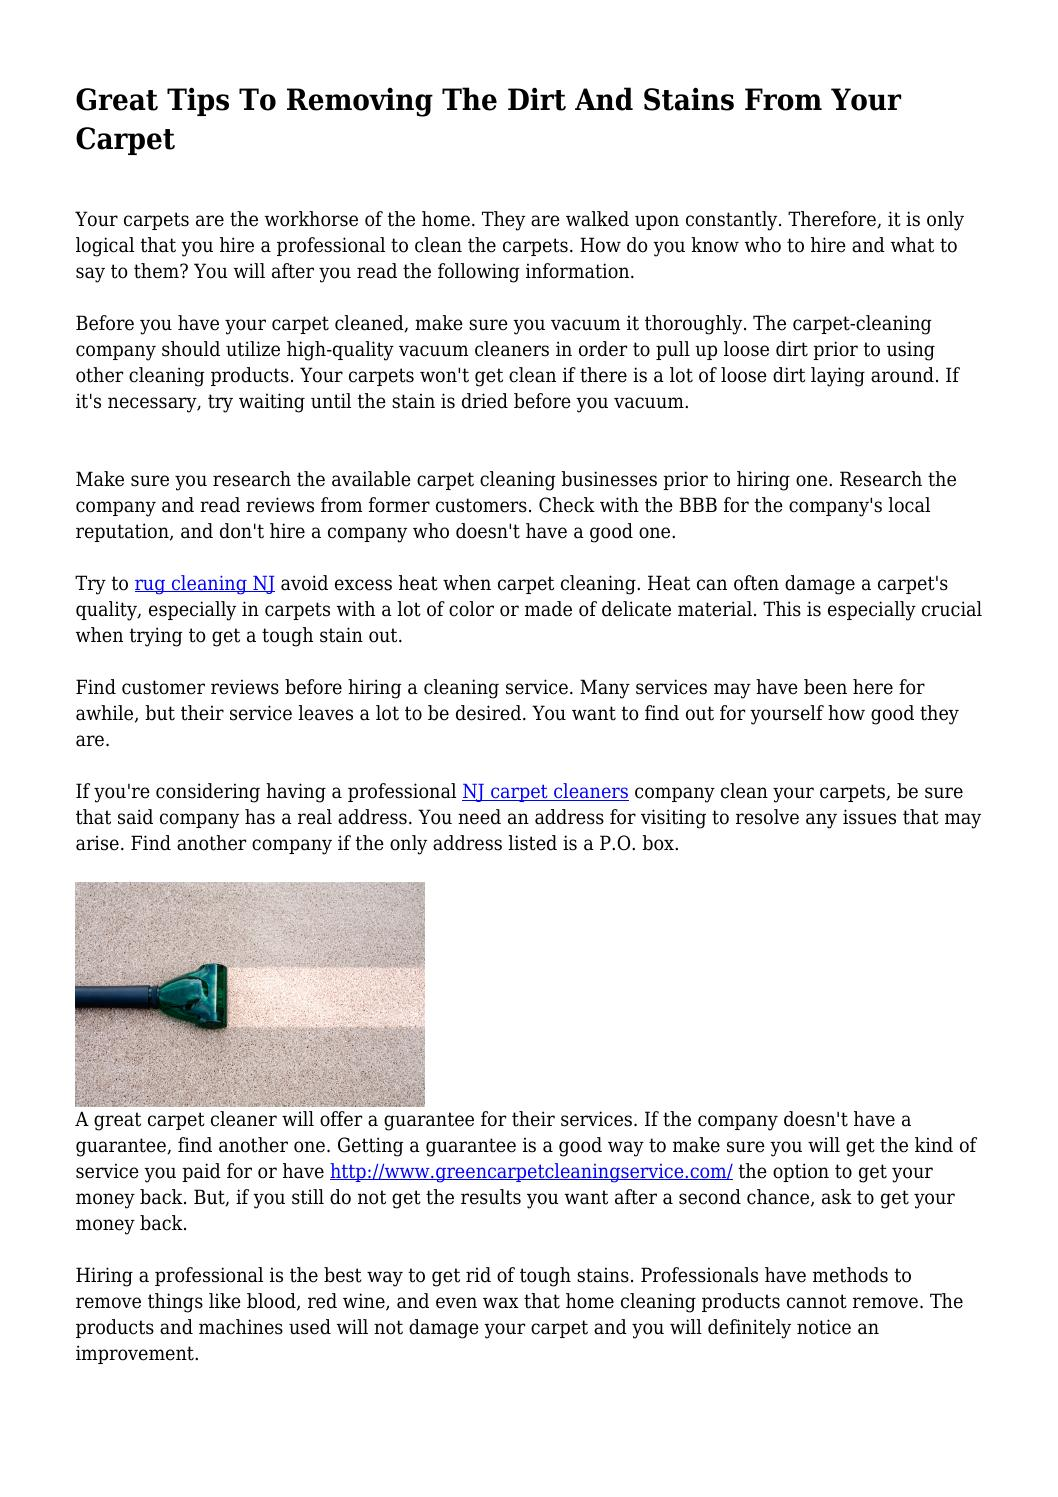 Great Tips To Removing The Dirt And Stains From Your Carpet by helpfulincubus252 - issuu